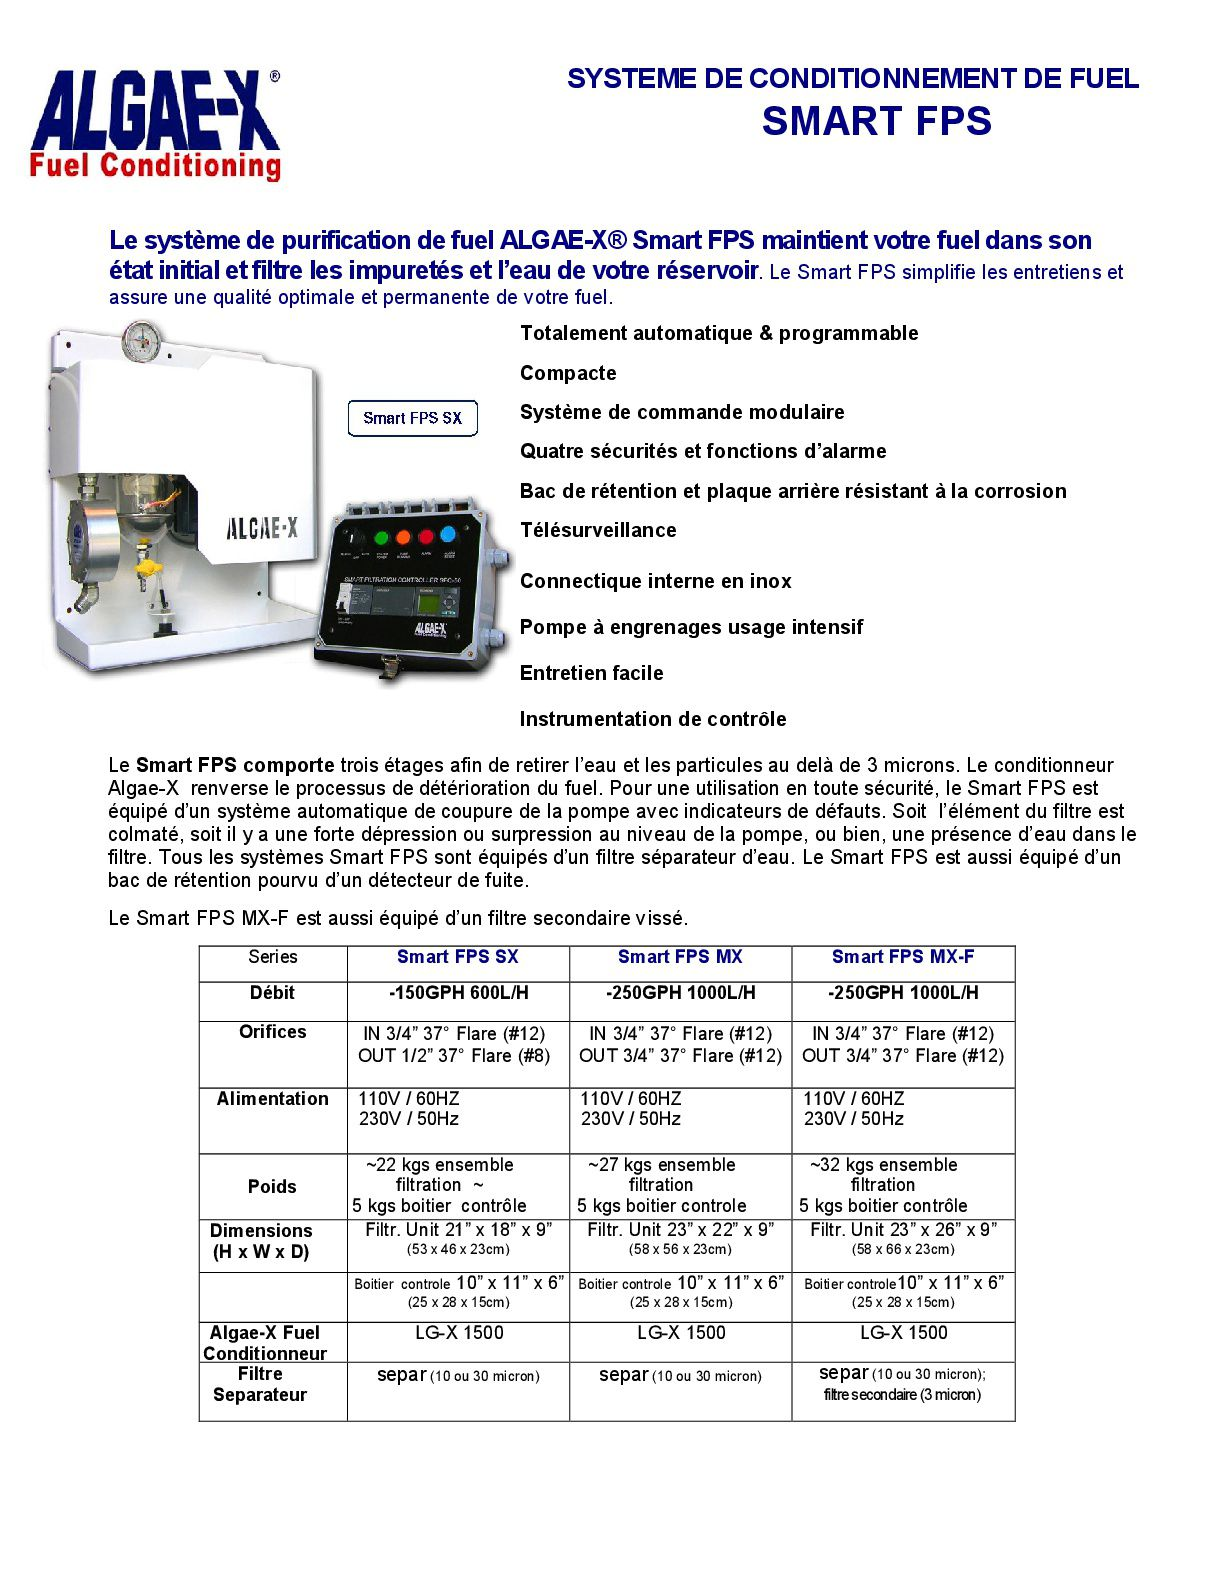 Documentation sur le conditionneur de carburant Algae-X.